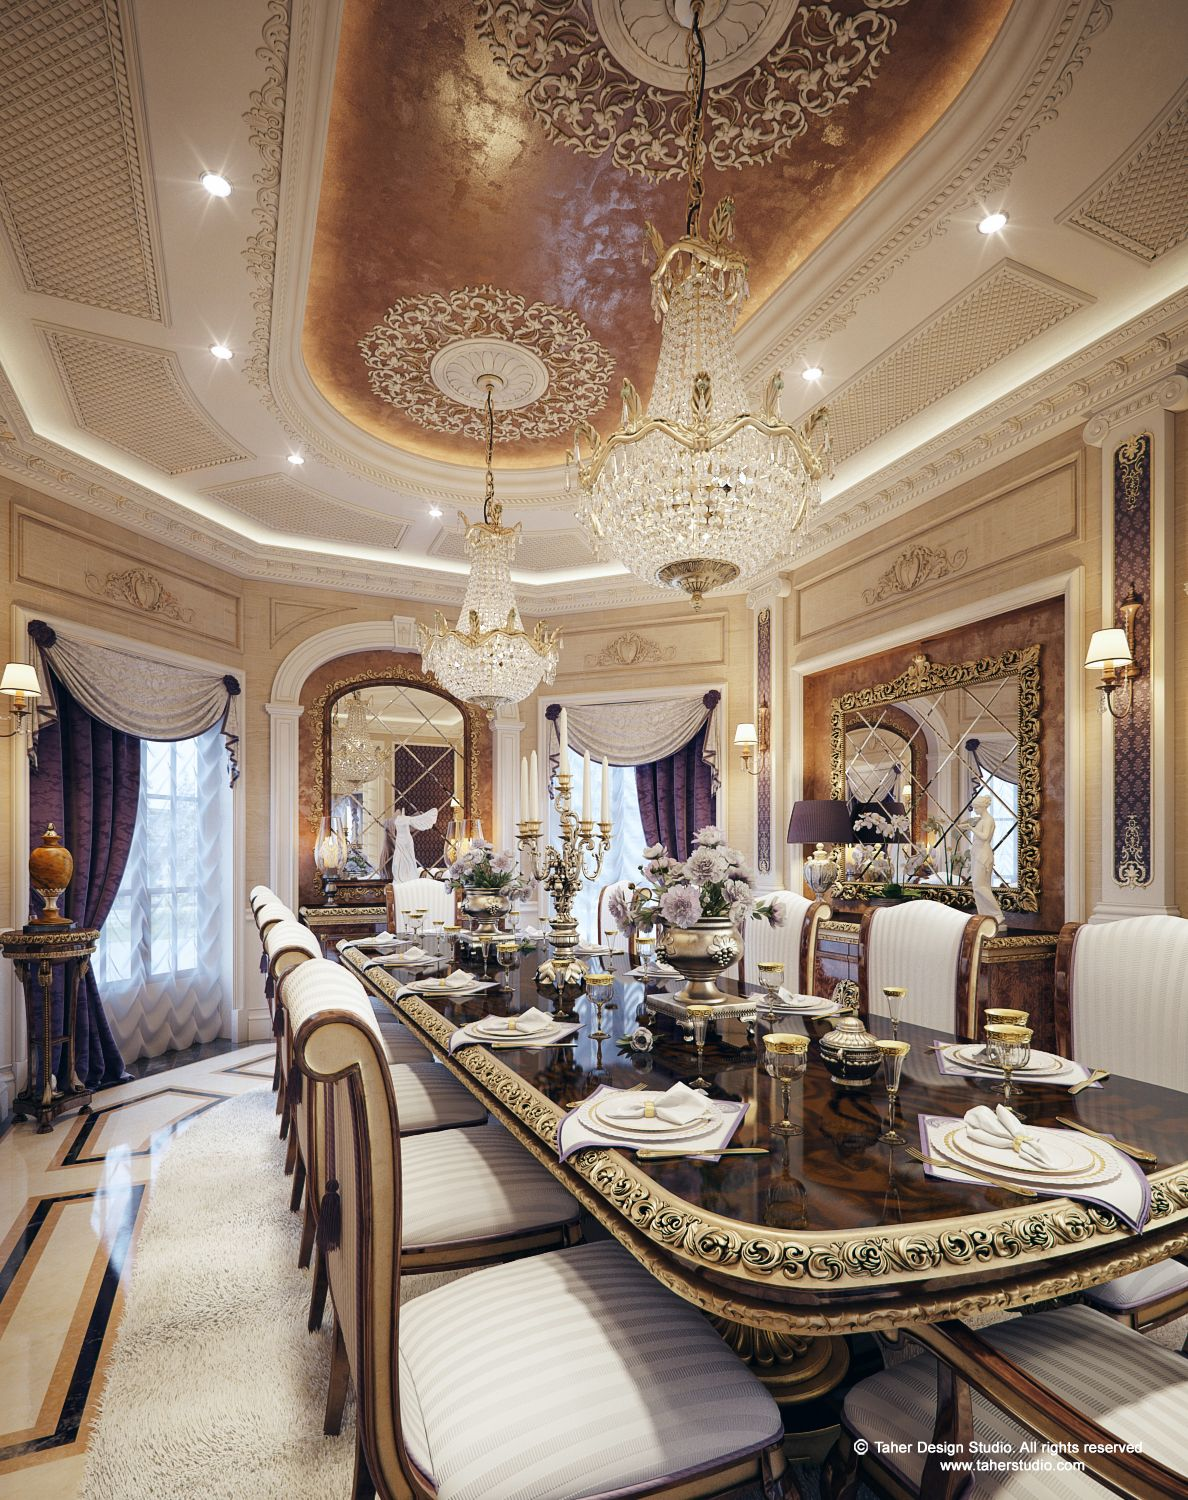 luxury mansion interior qatar - Luxury Mansion Interior